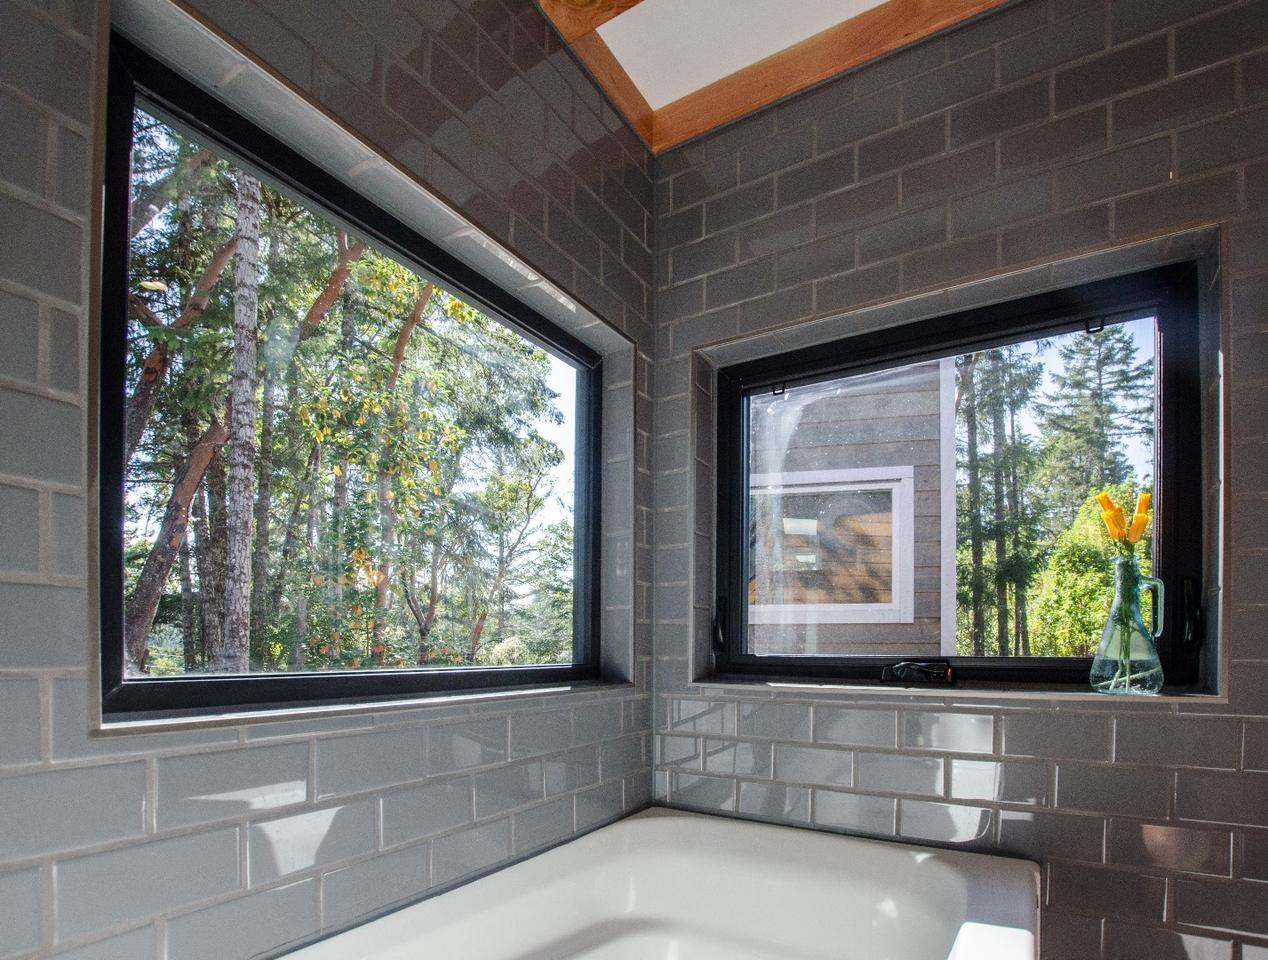 Kestrel tiny house: Soak in the tub and drink in the view